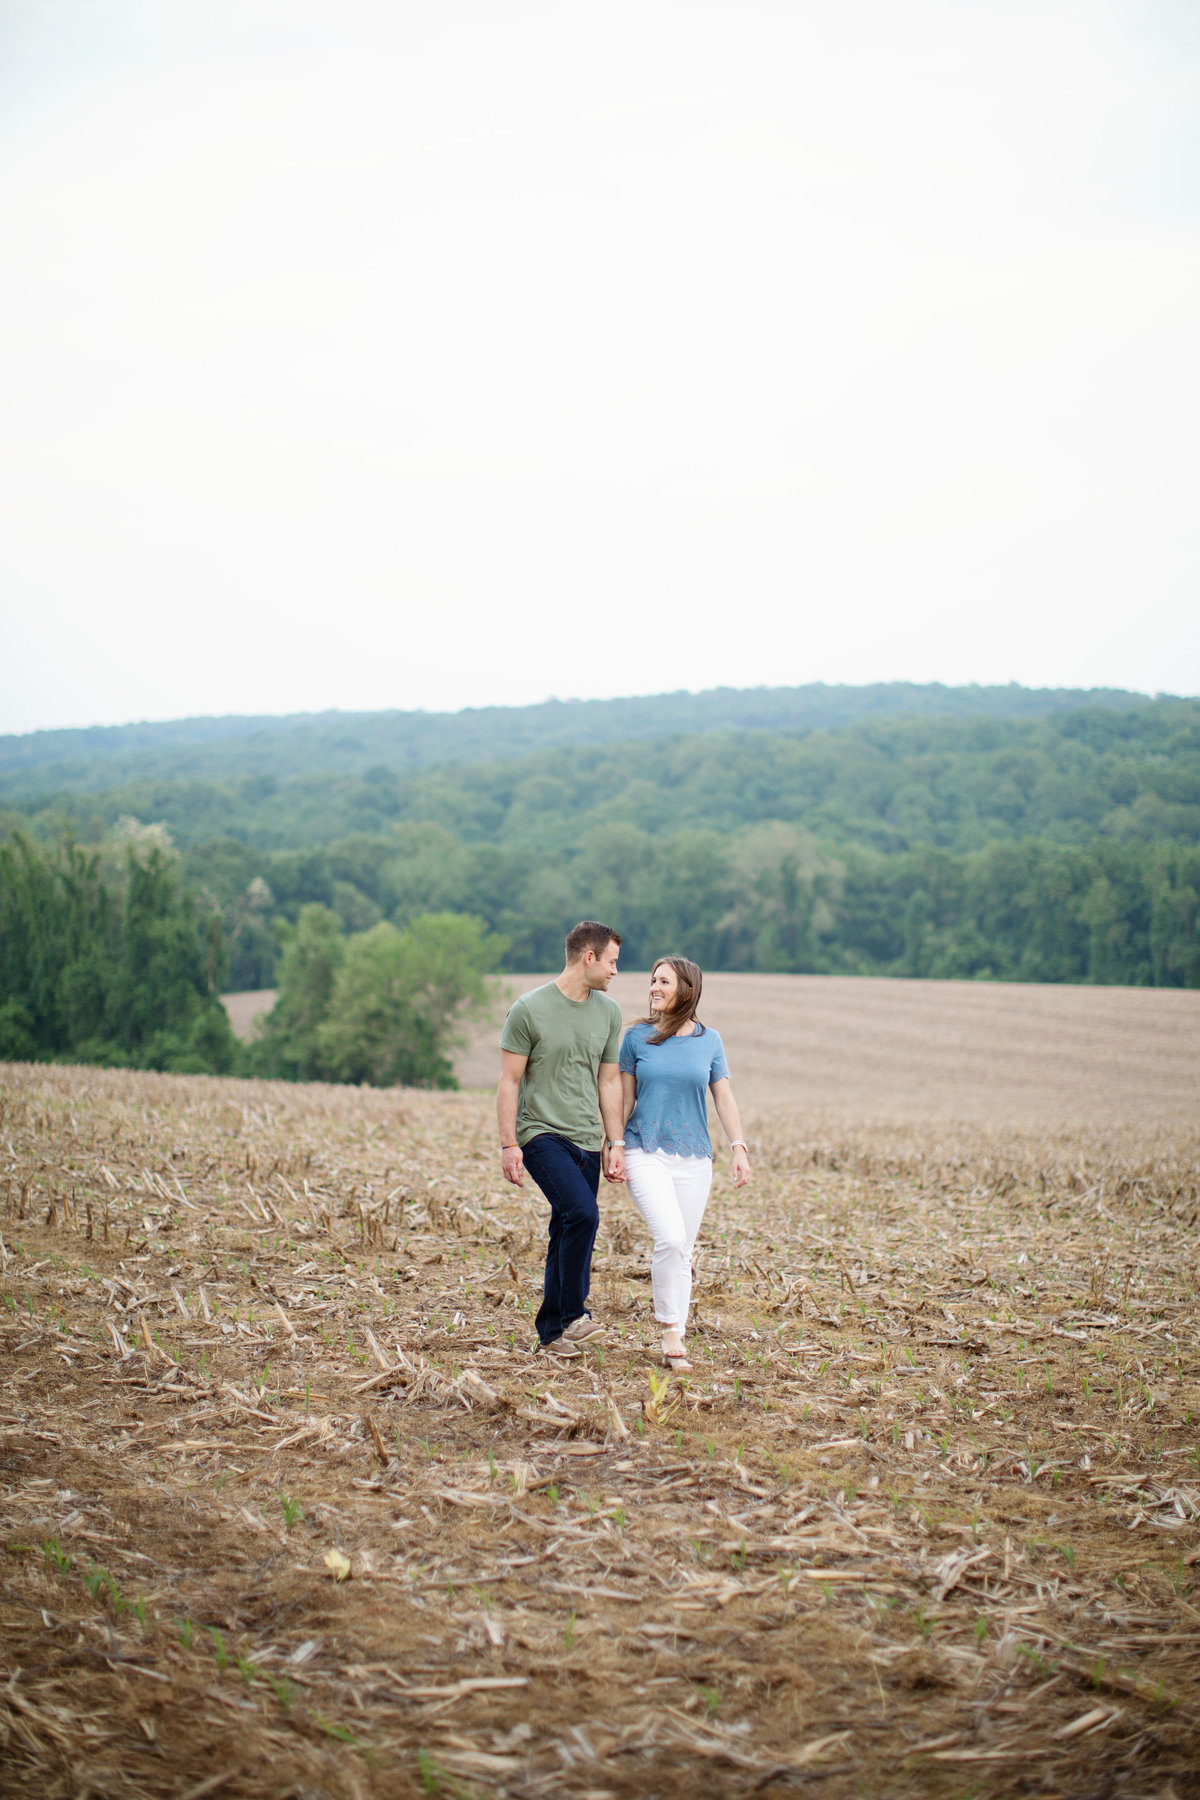 LAUREN+JOEL-ENGAGEMENT PHOTOS-097